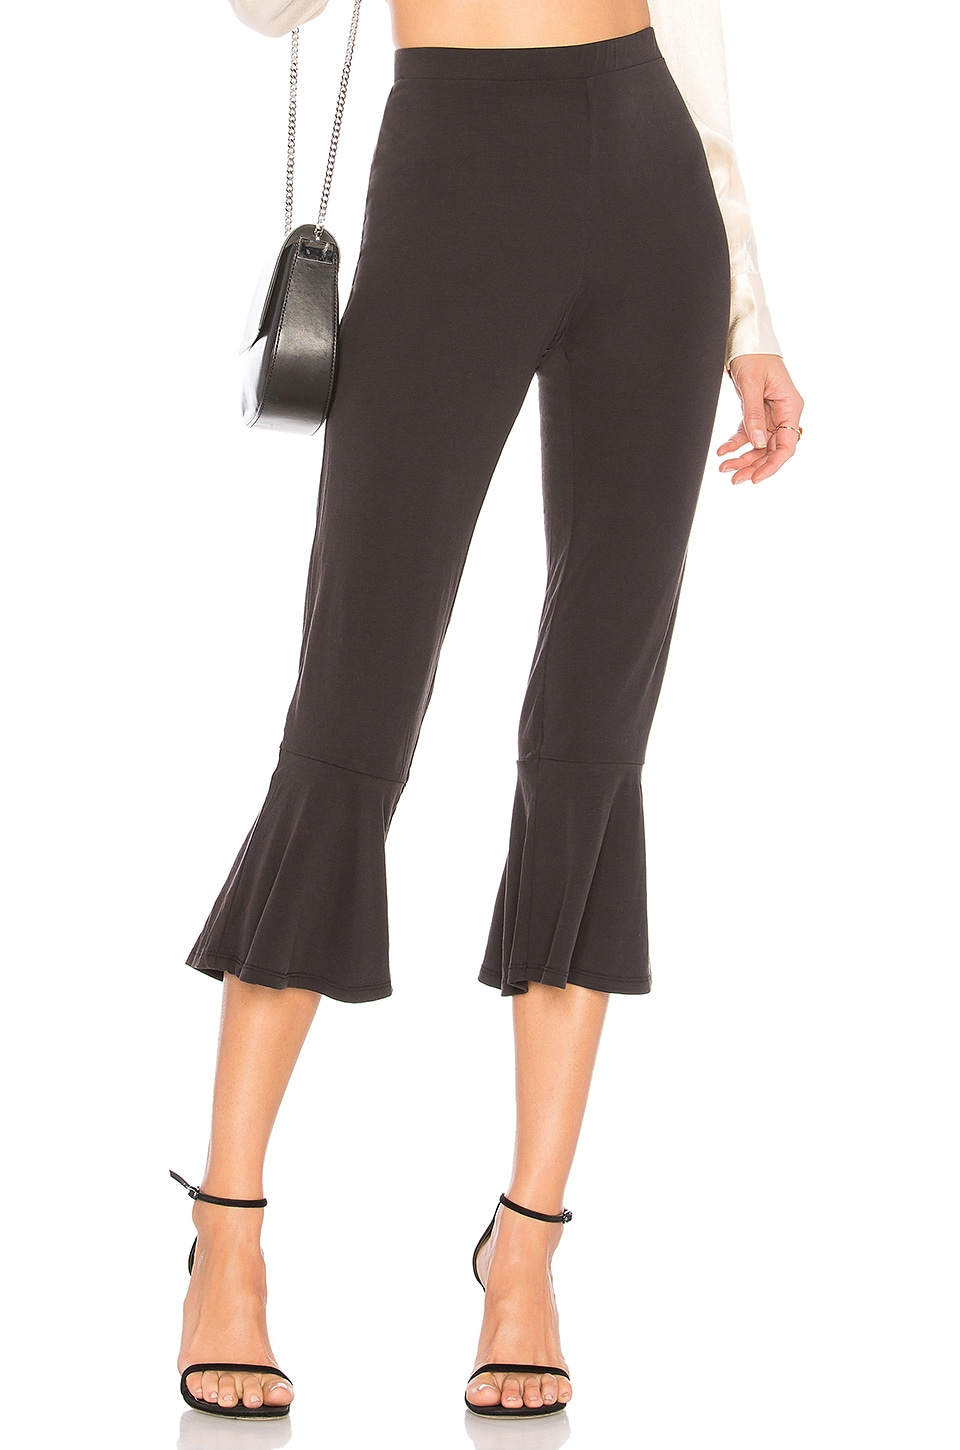 Lounge Ruffle Bottom Pant